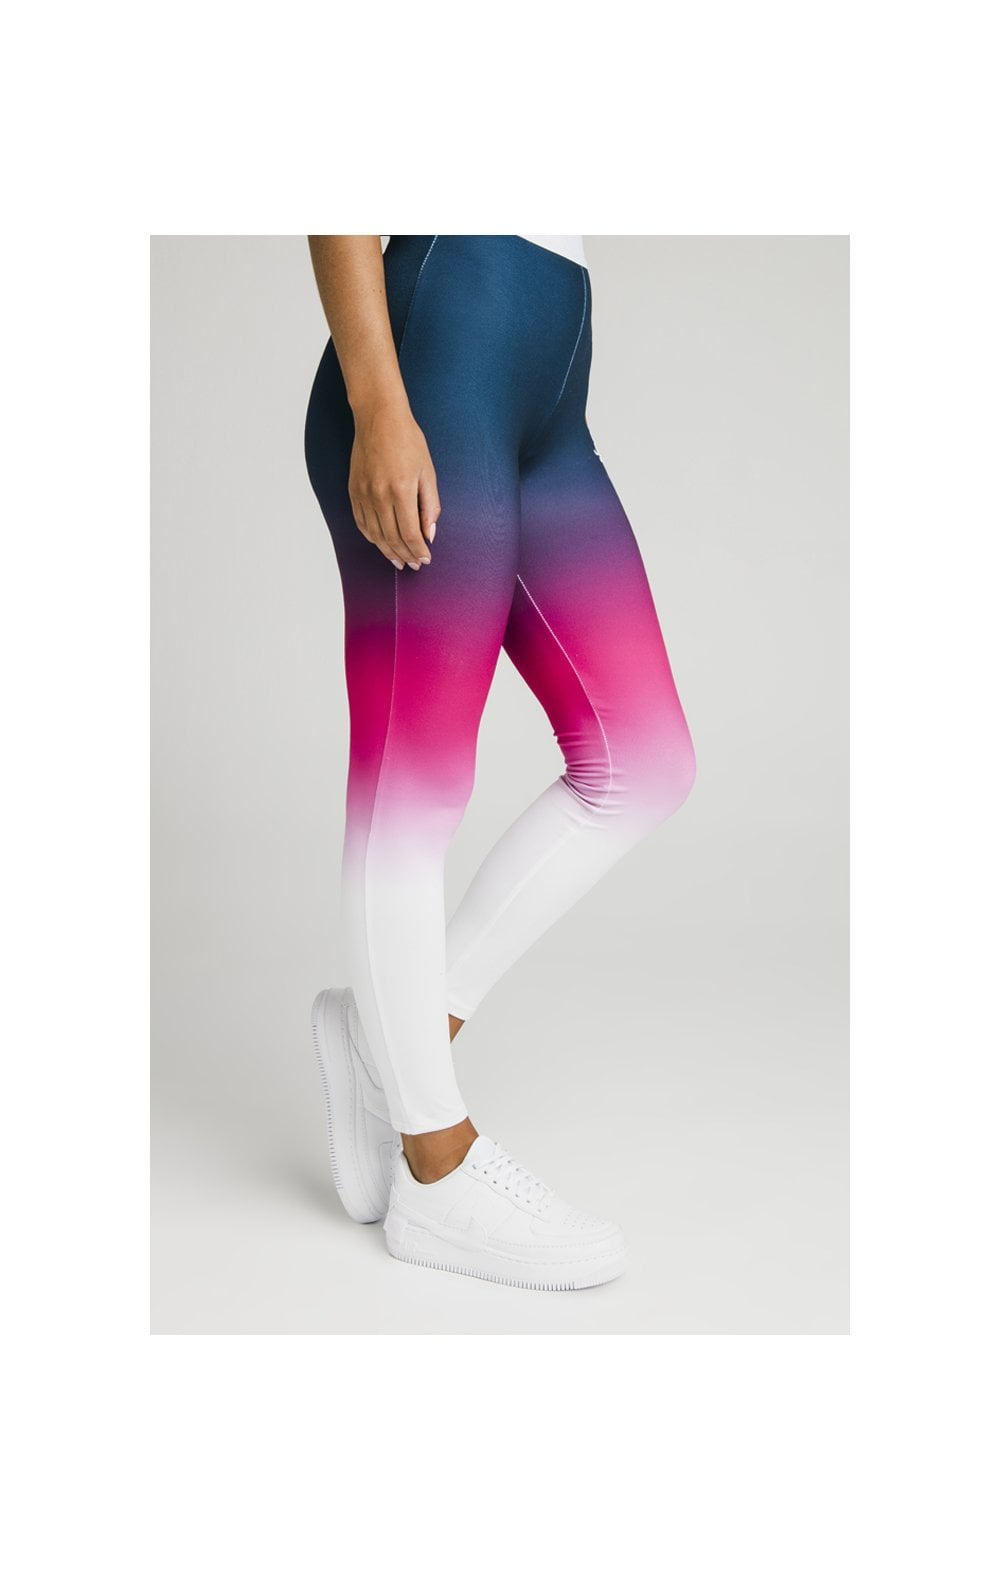 SikSilk Fade Tape Leggings - Navy, Pink & White (1)